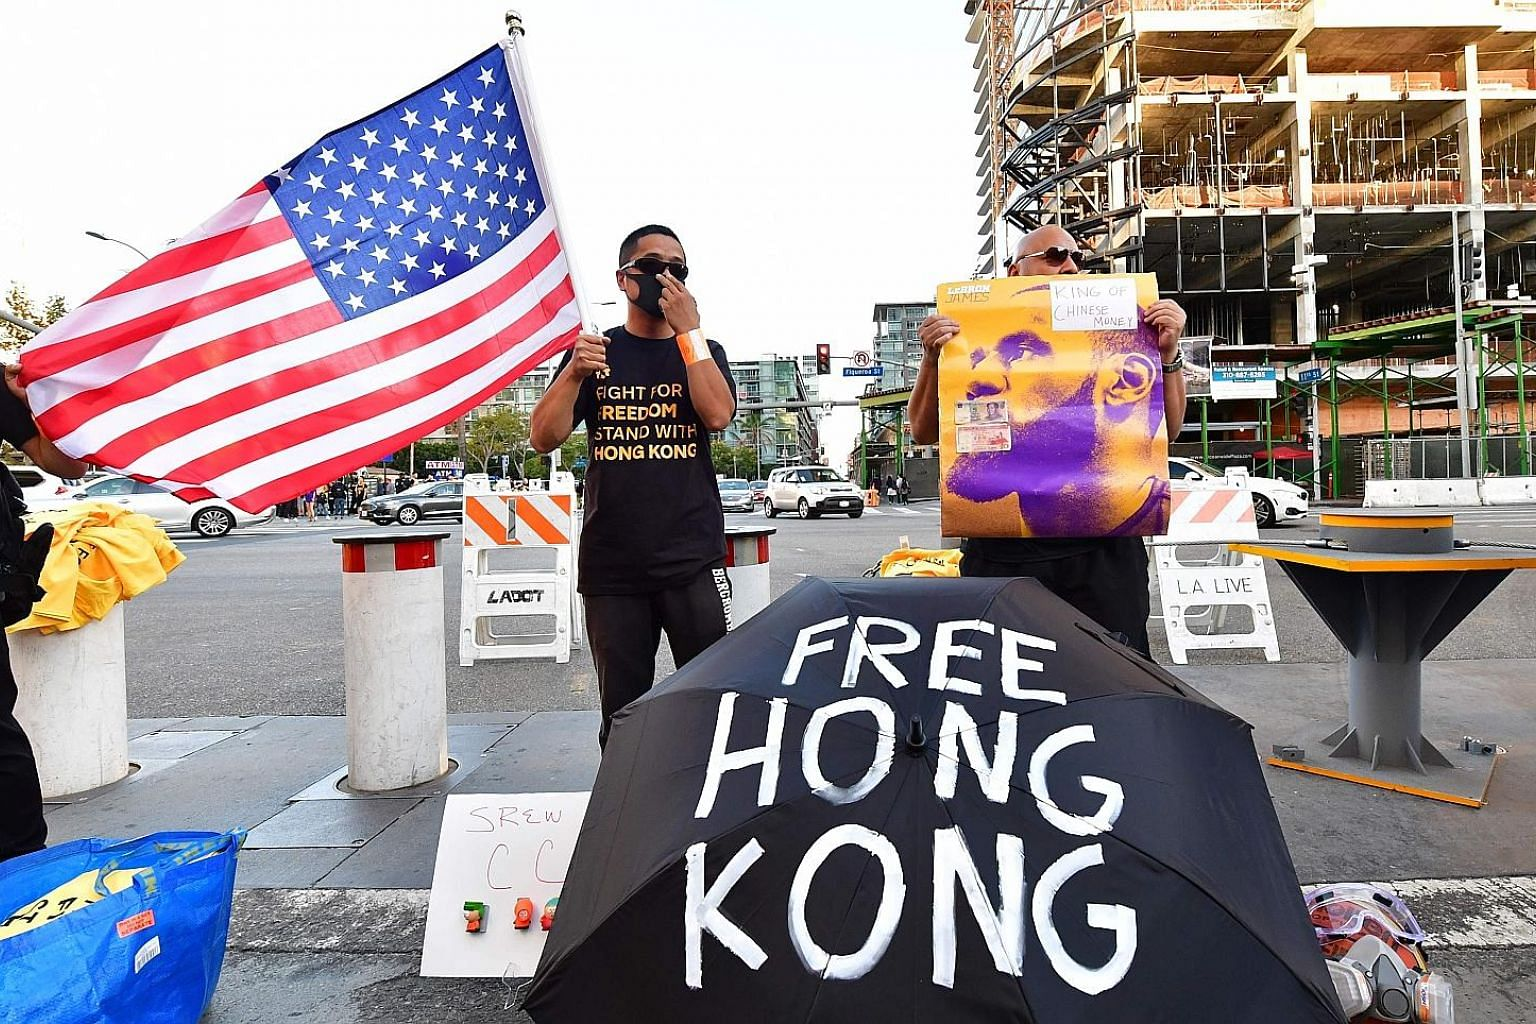 Supporters of Hong Kong's pro-democracy protesters rallying outside Los Angeles' Staples Centre, ahead of a National Basketball Association game late last month. The US Senate on Tuesday unanimously passed the Hong Kong Human Rights and Democracy Act